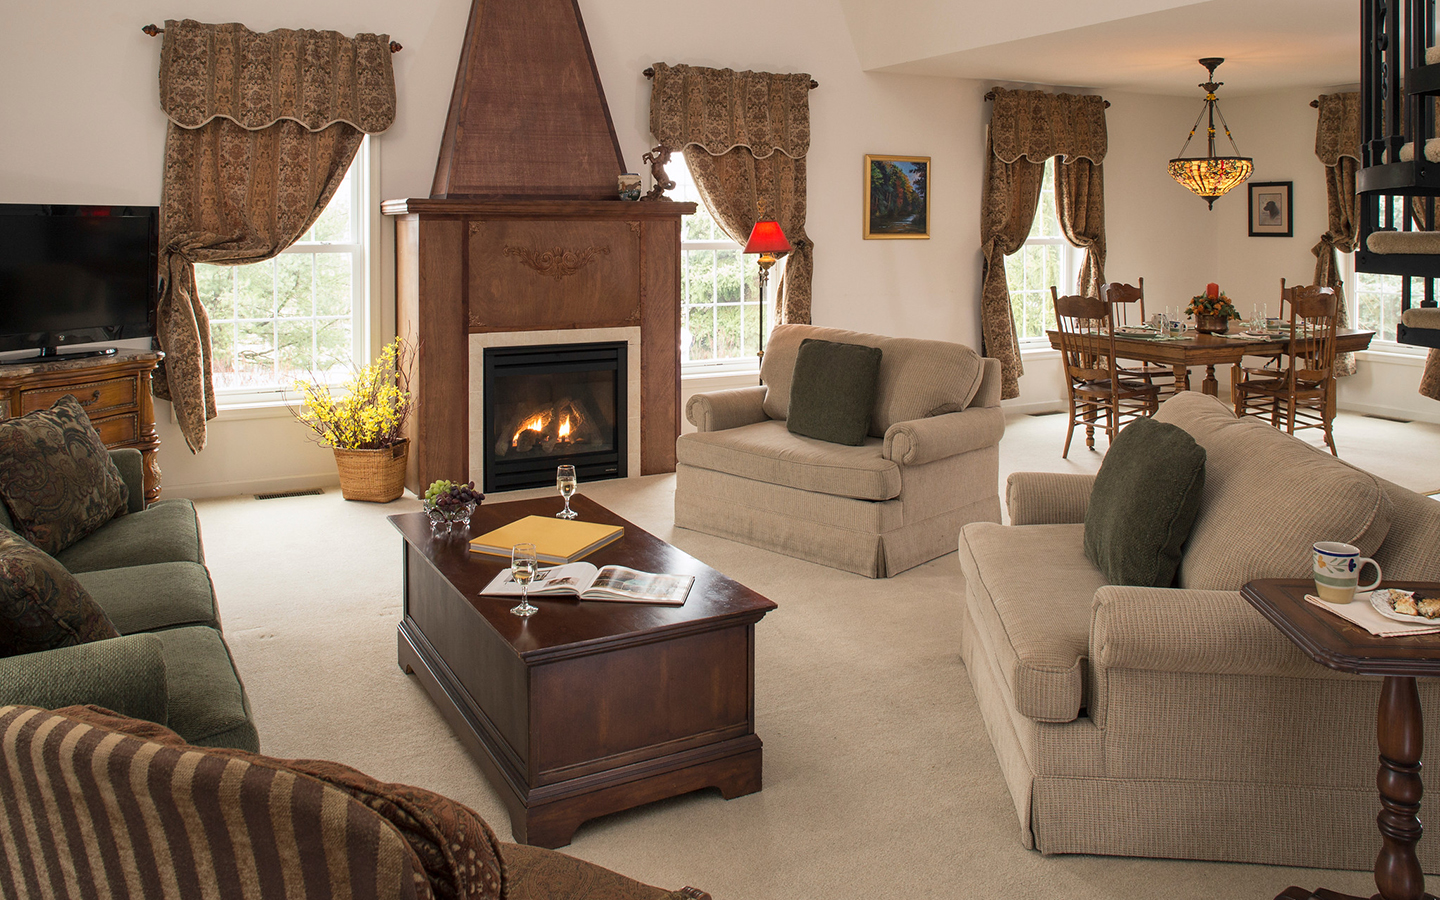 Sitting area with large, soft couches, wine glasses and a warm fireplace in Hershey, PA bed and breakfast